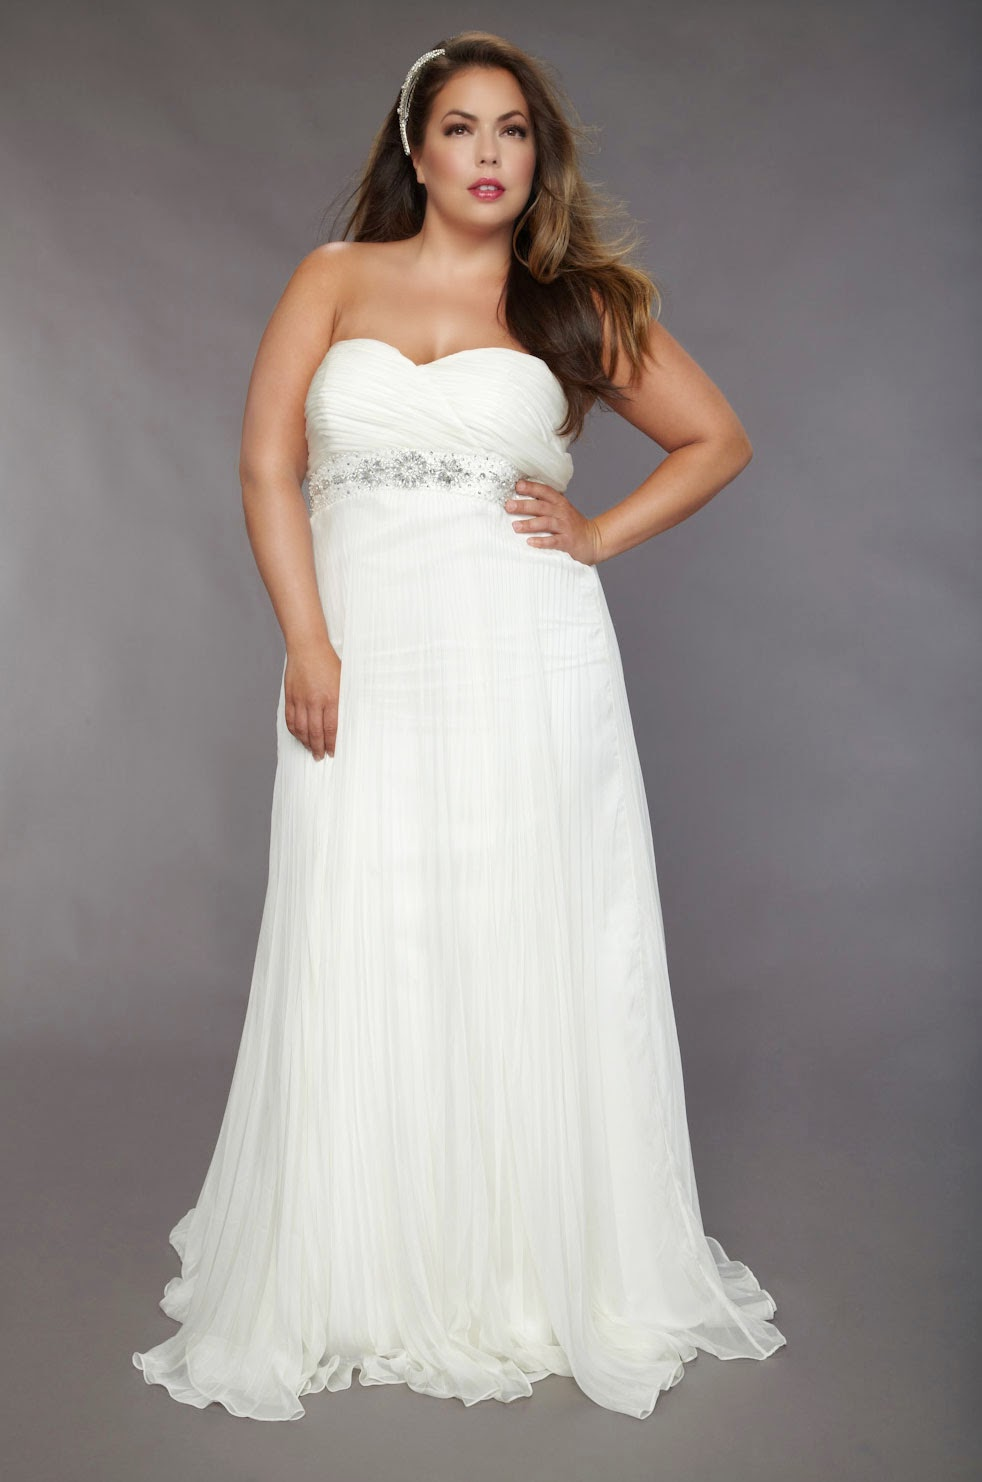 Lane Bryant Bridesmaid Dresses